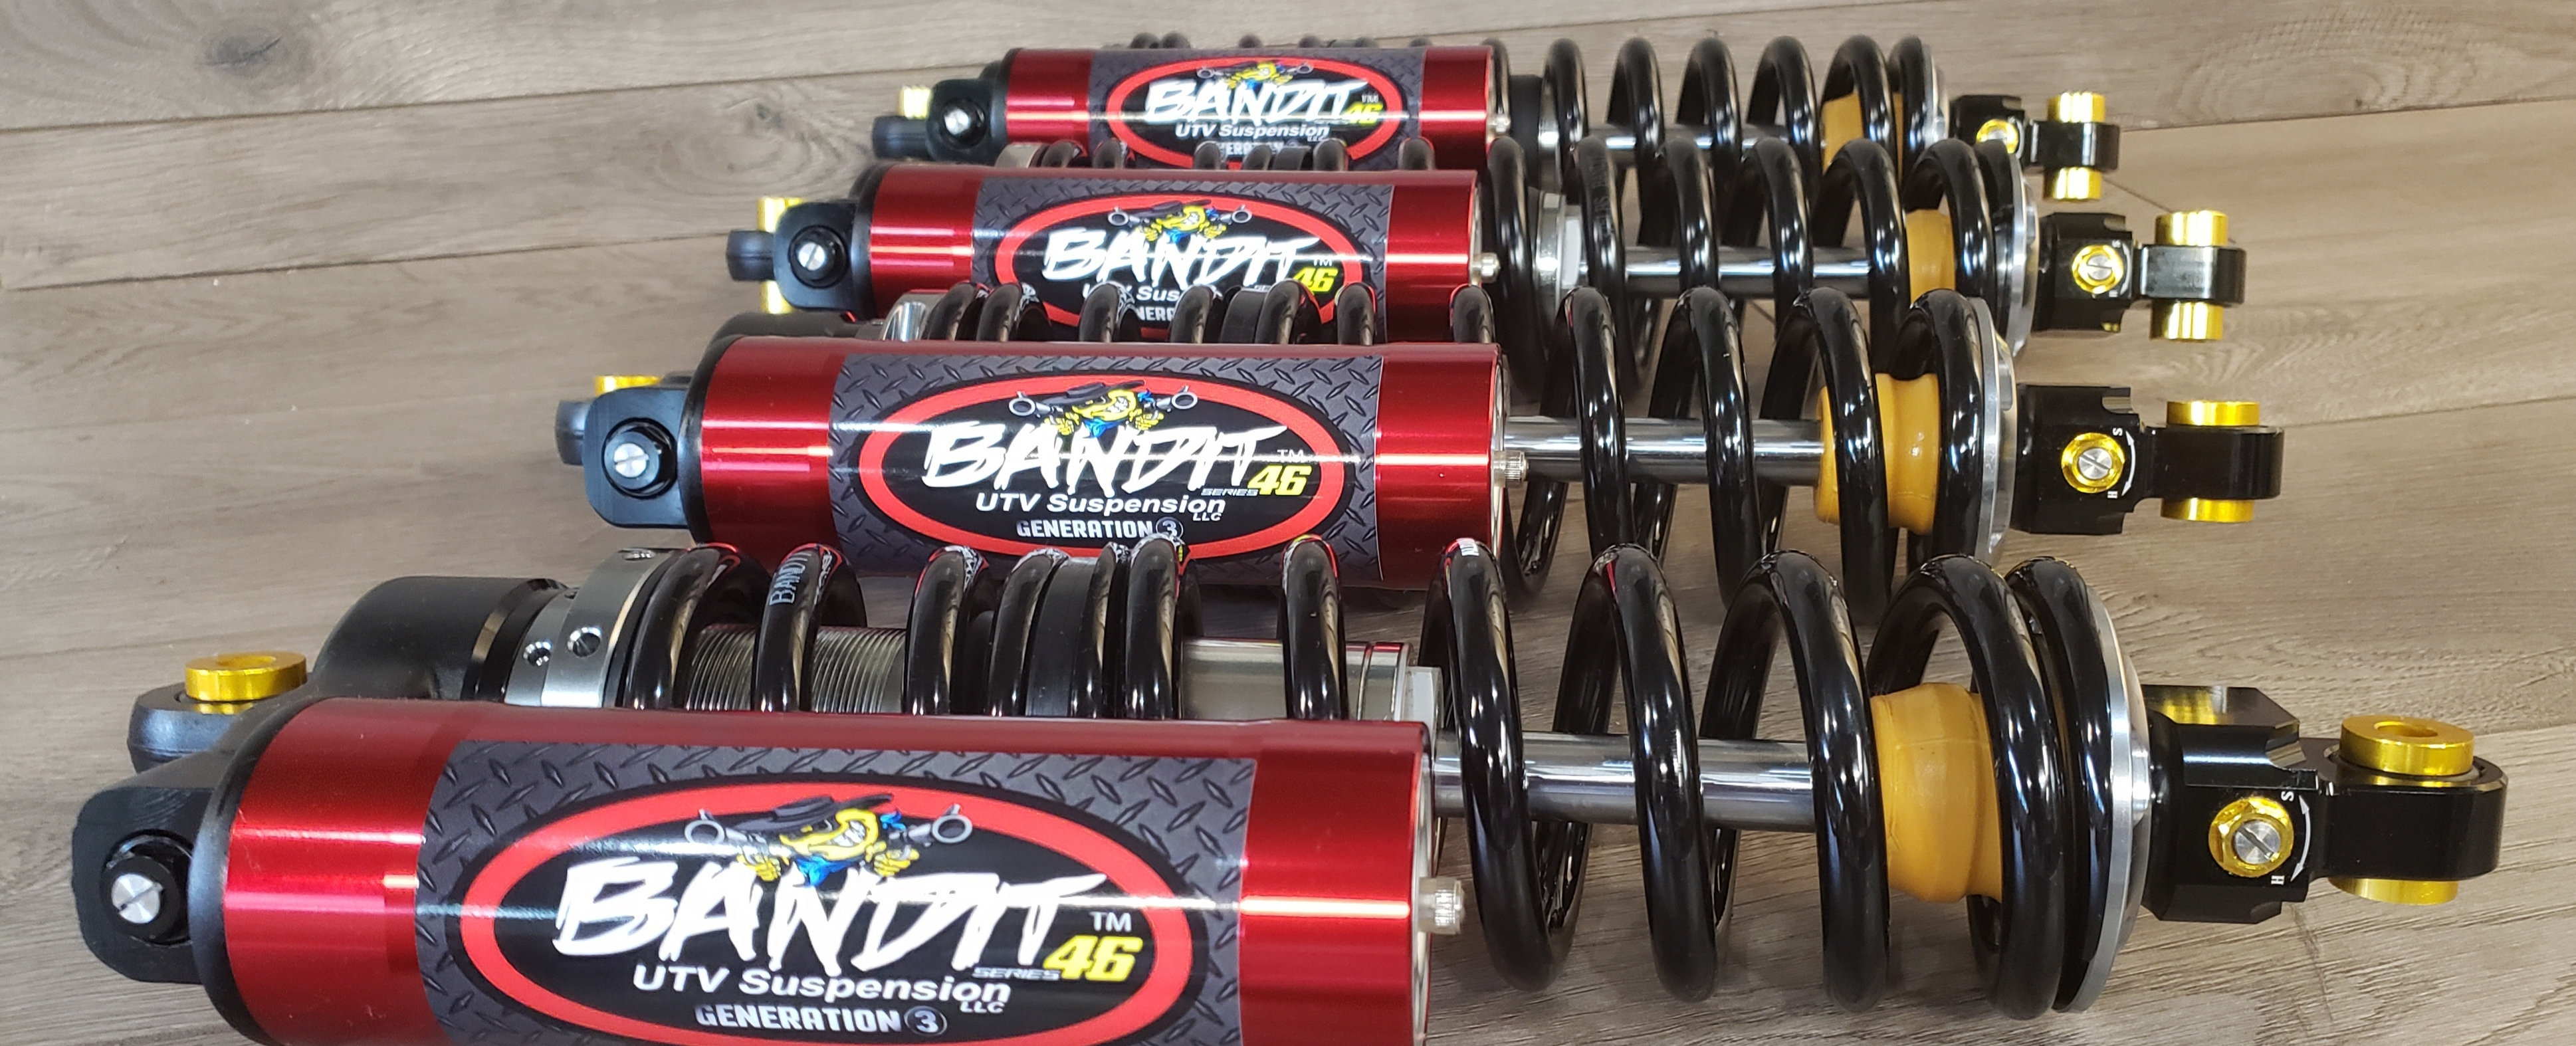 NEW (ALL 4) 2012-2020 T4 SERIES 46 GENERATION 3 PRO HIGH VOLUME STEEL |  Bandit UTV